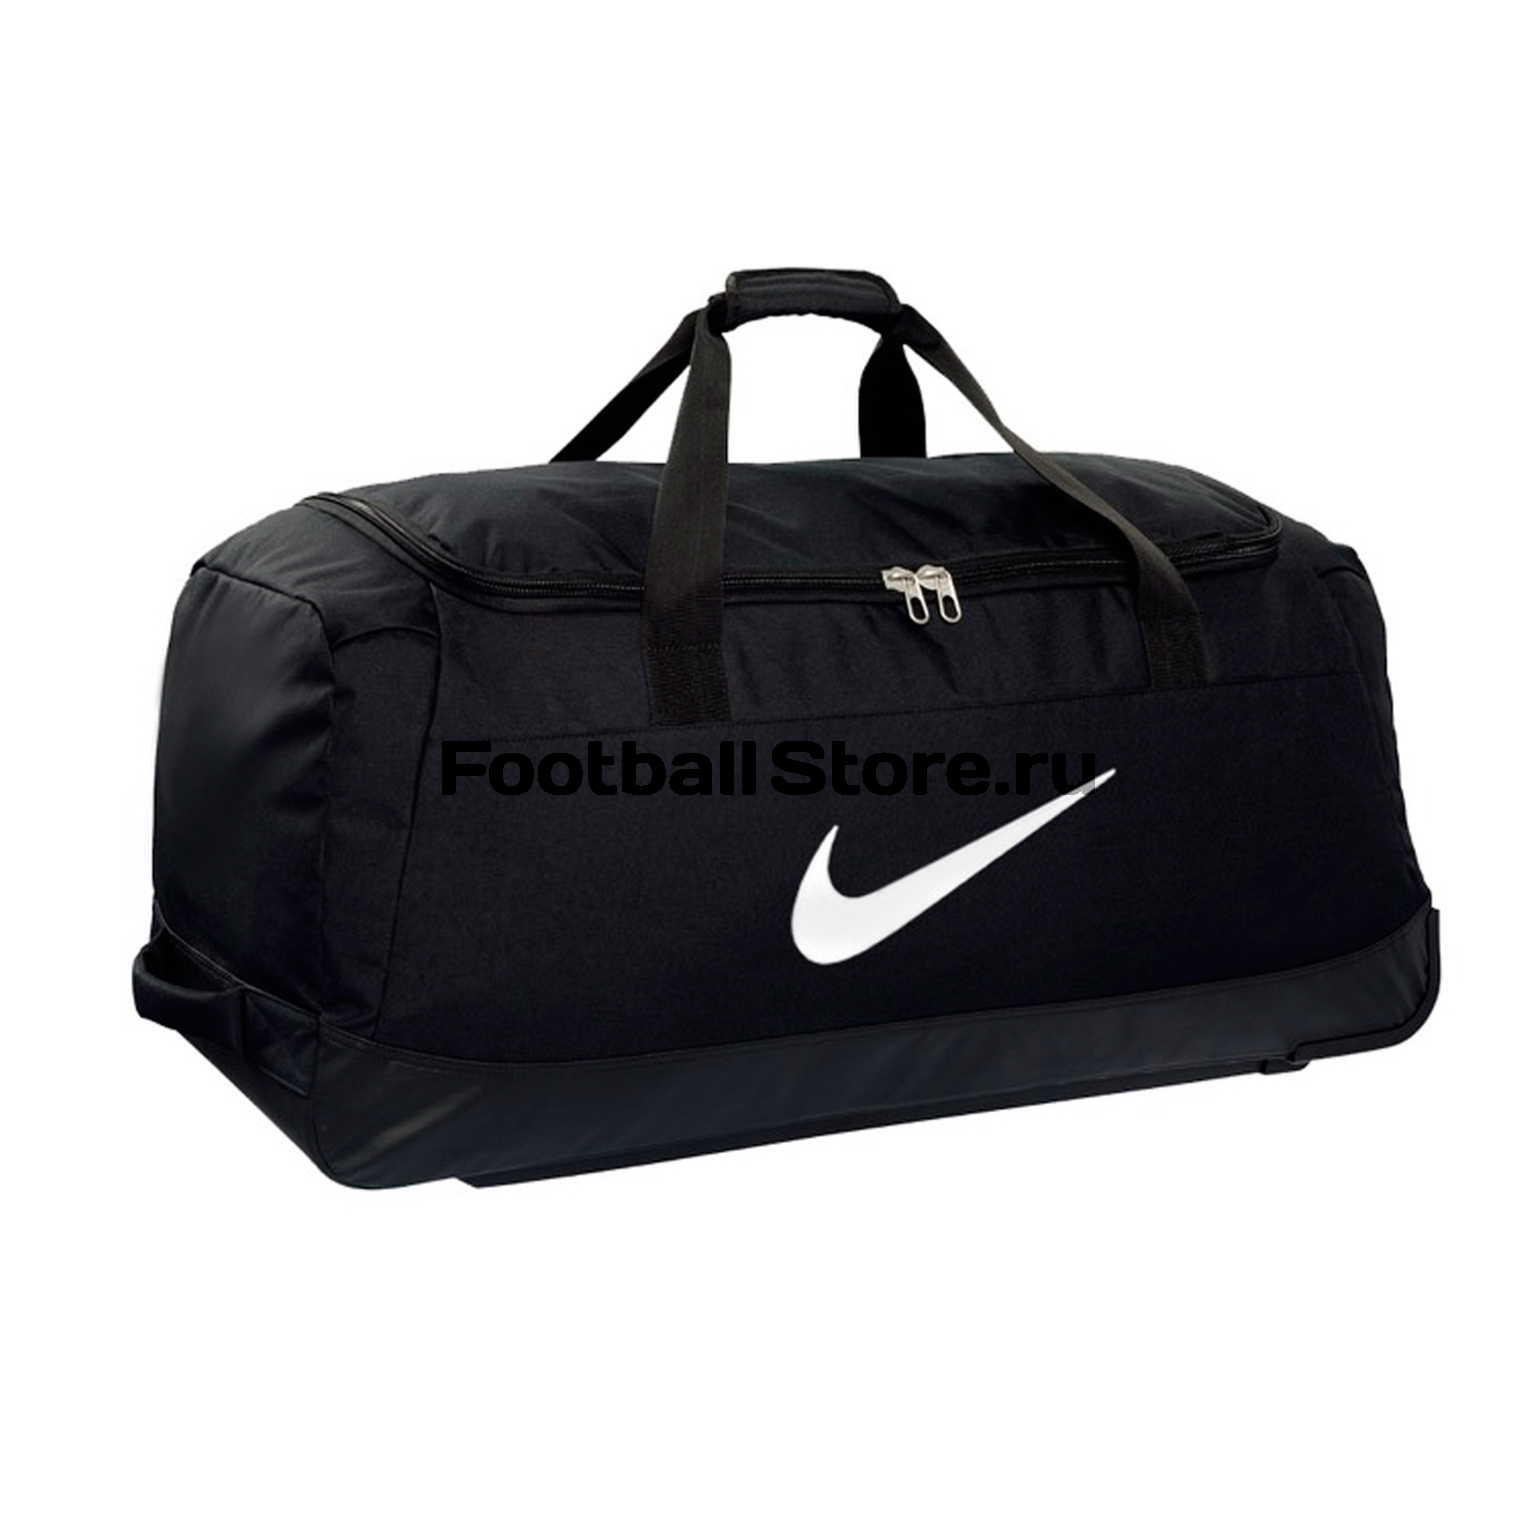 Сумка Nike Club Team SWSH Roller Bag BA5199-010 цена